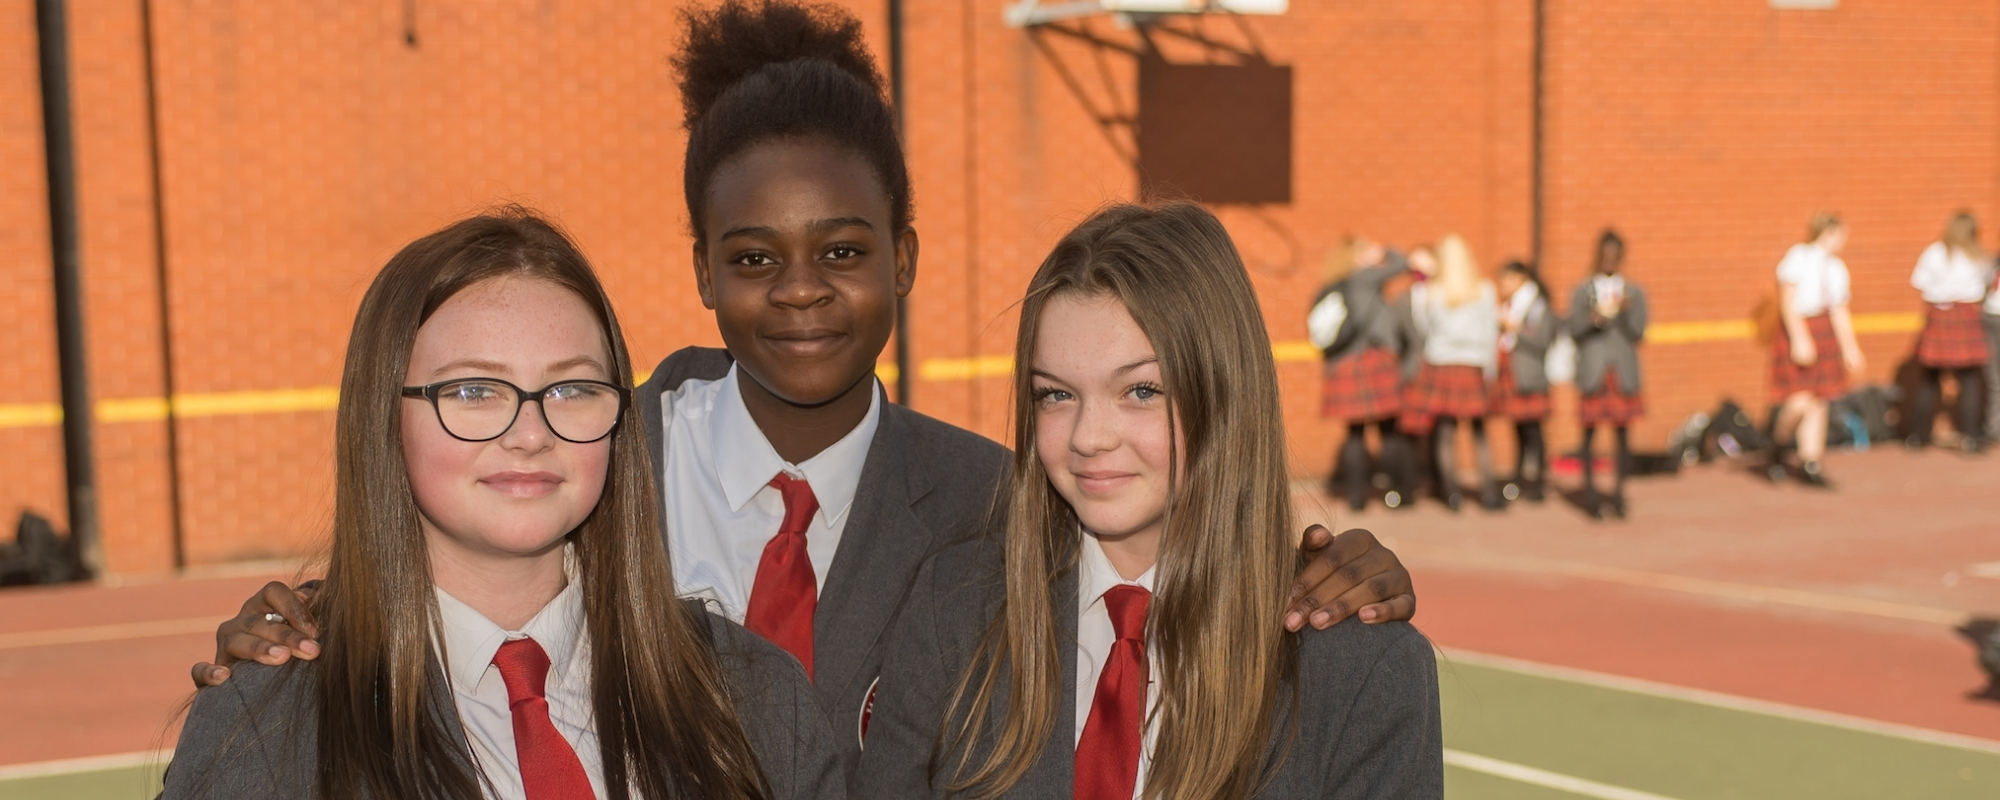 Hazel wood High School pupils working in front of periodic table